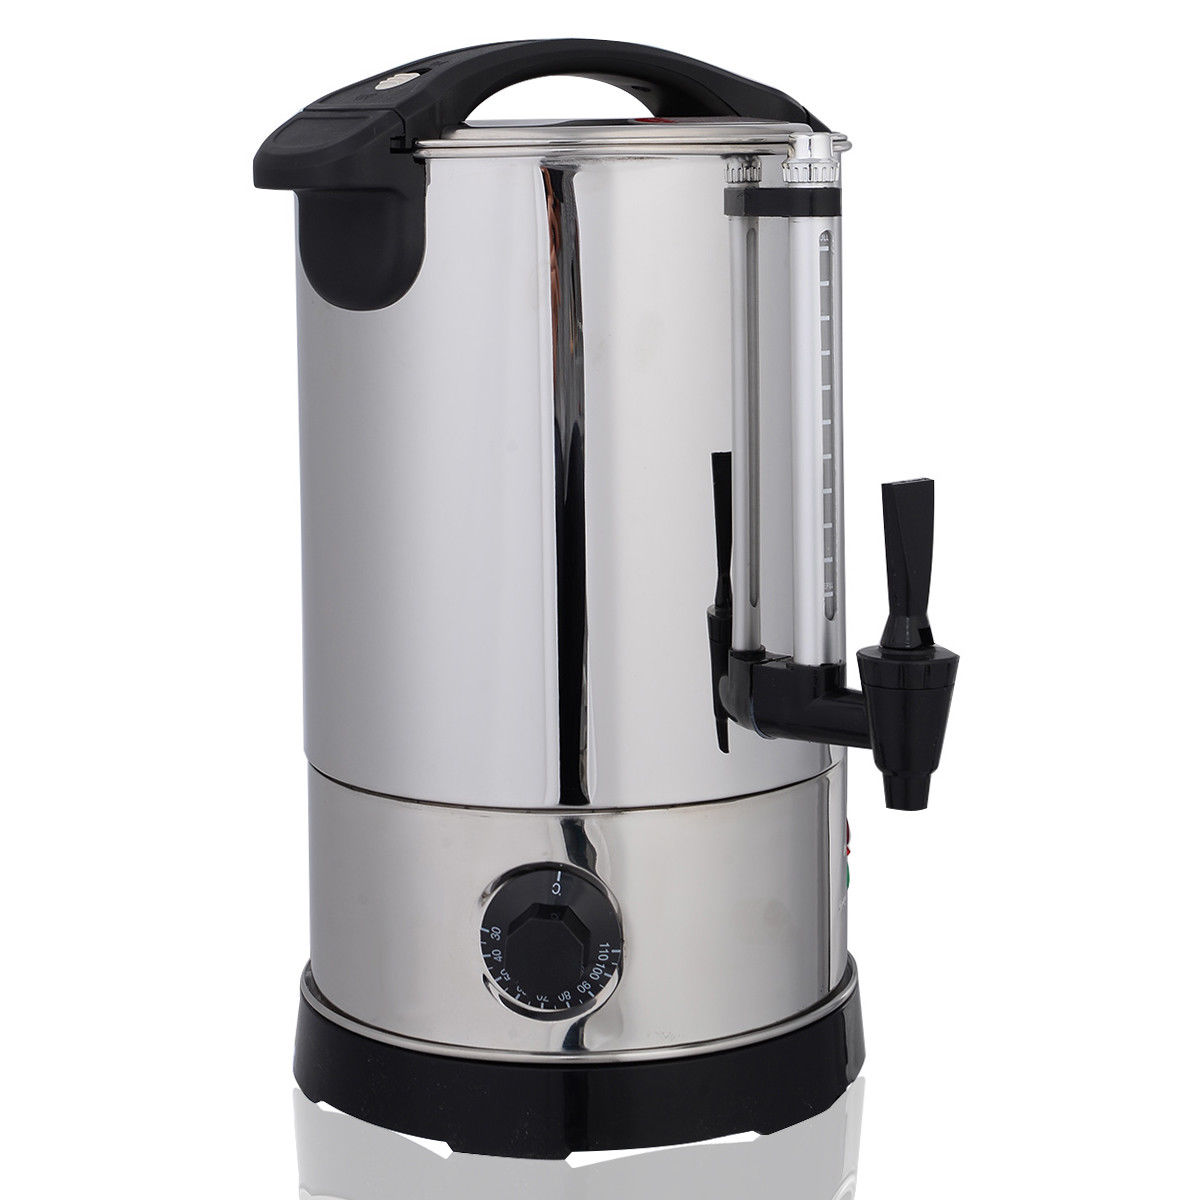 Costway Stainless Steel 6 Quart Electric Water Boiler Warmer Hot ...